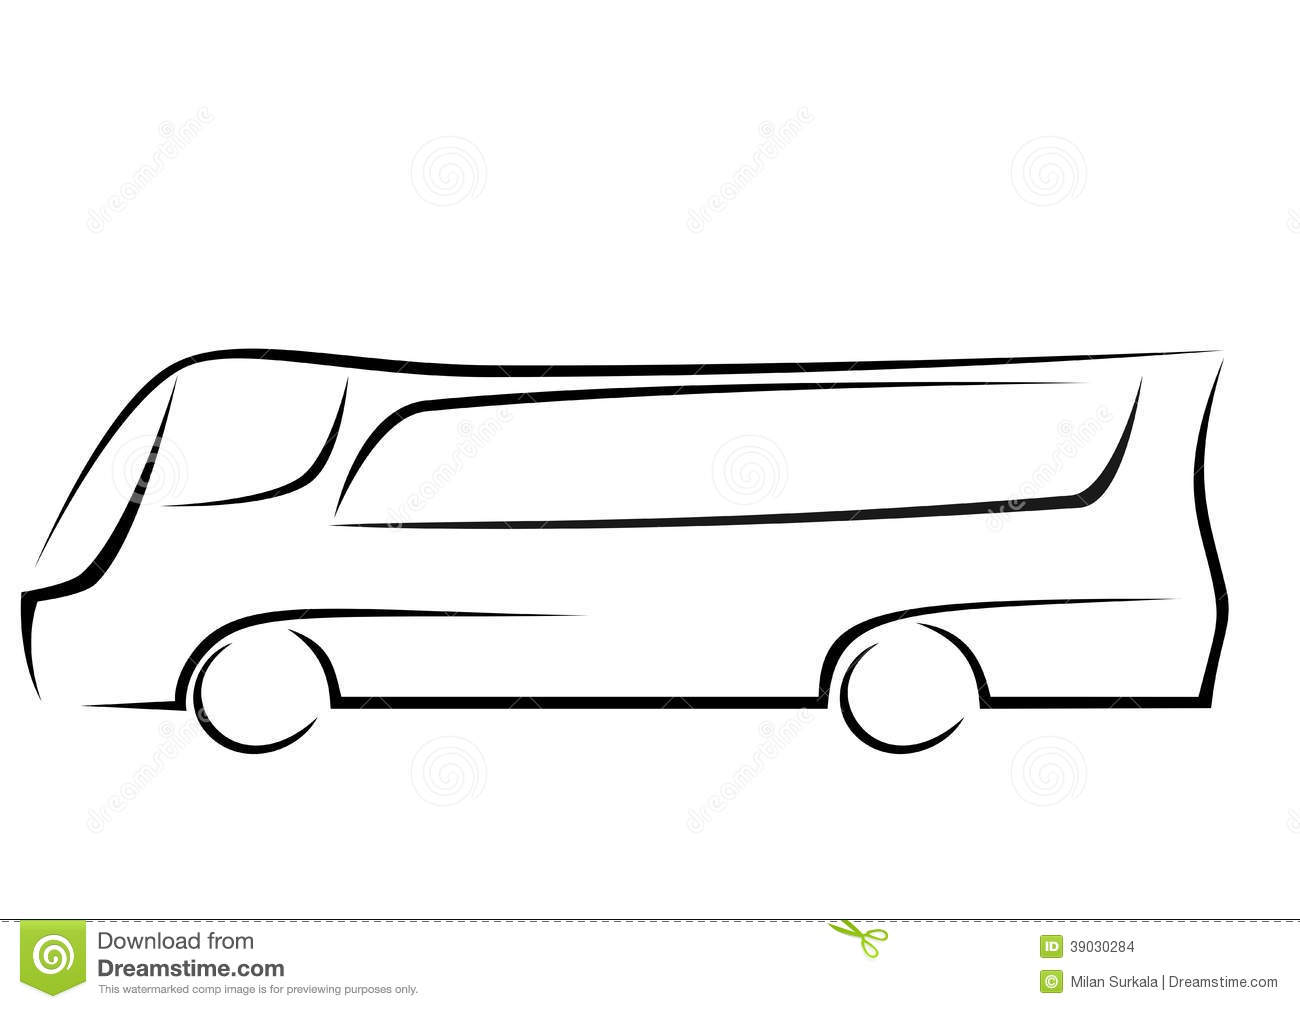 Logo Of A Aerodynamic Bus Stock Vector - Image: 39030284